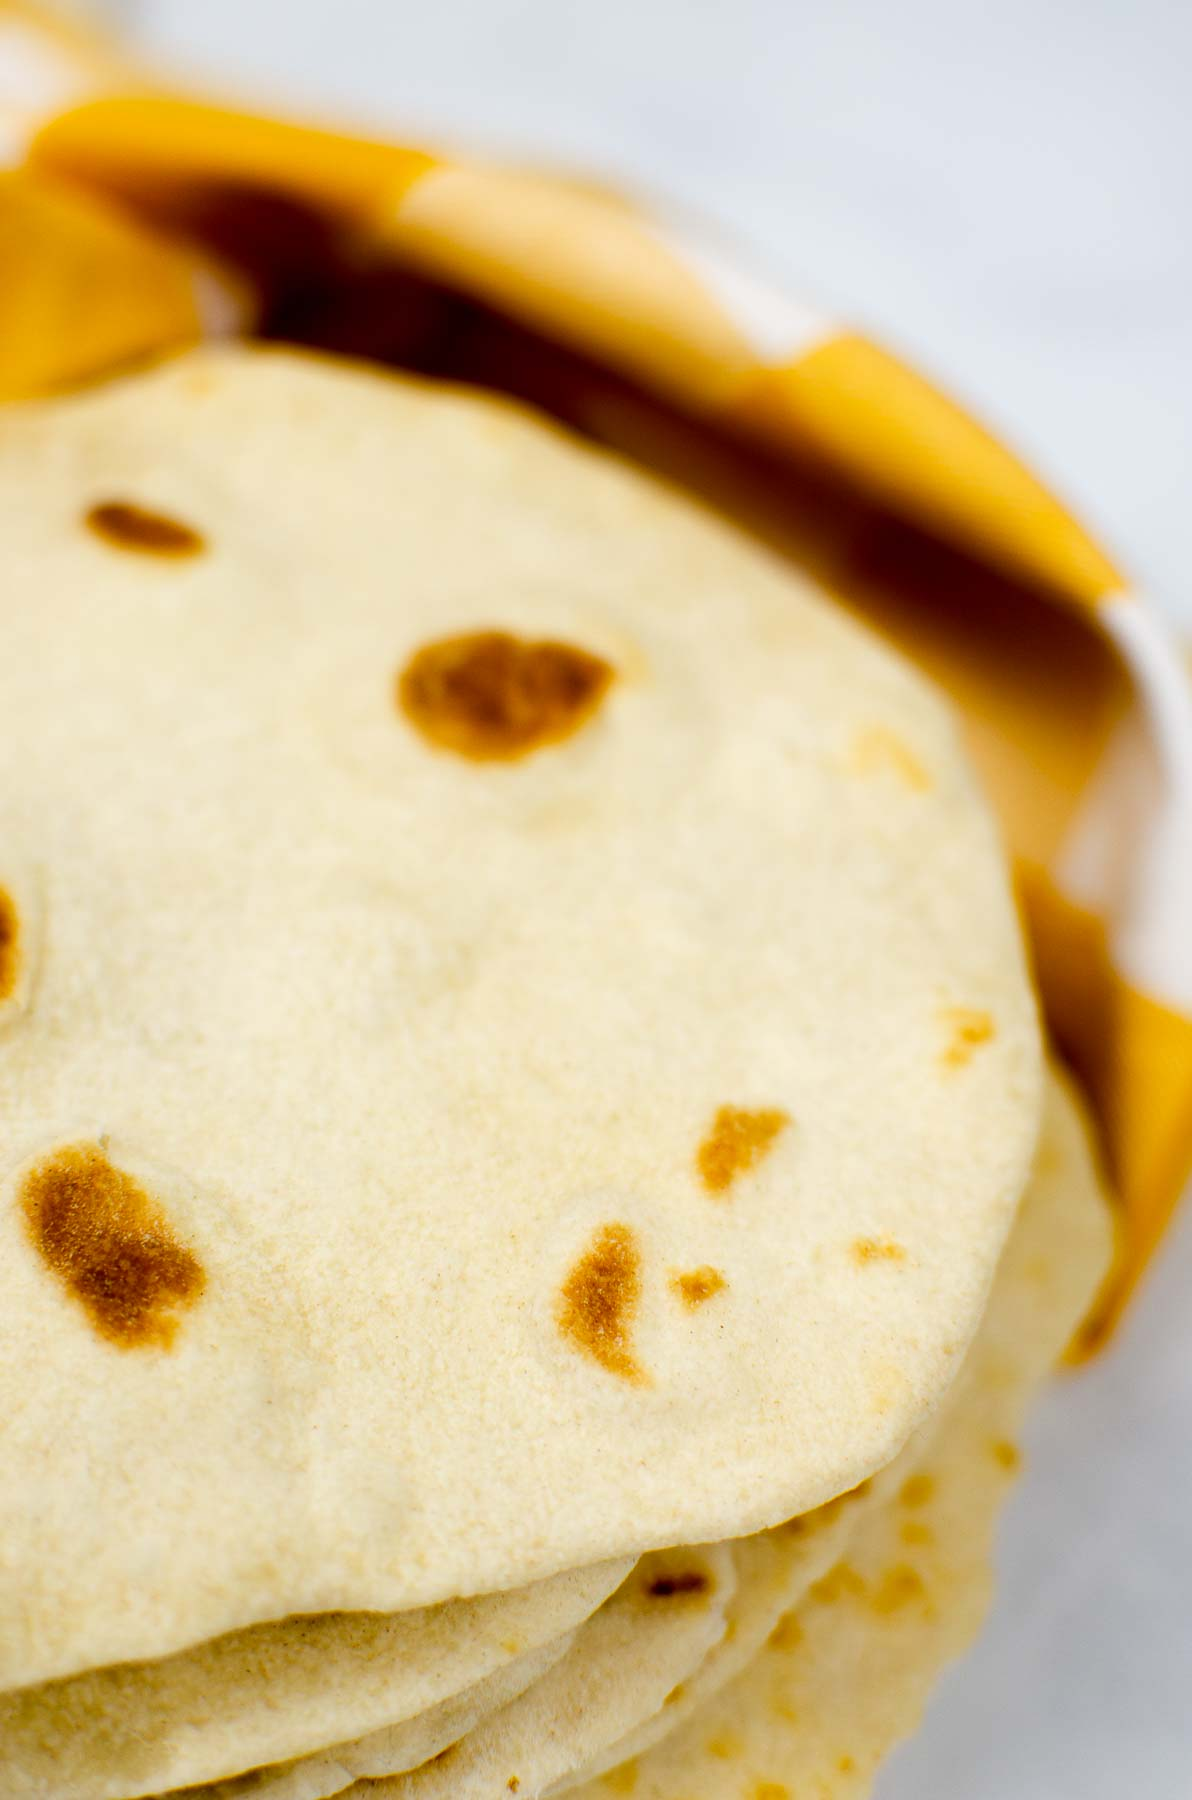 Flour tortillas wrapped in a yellow towel.